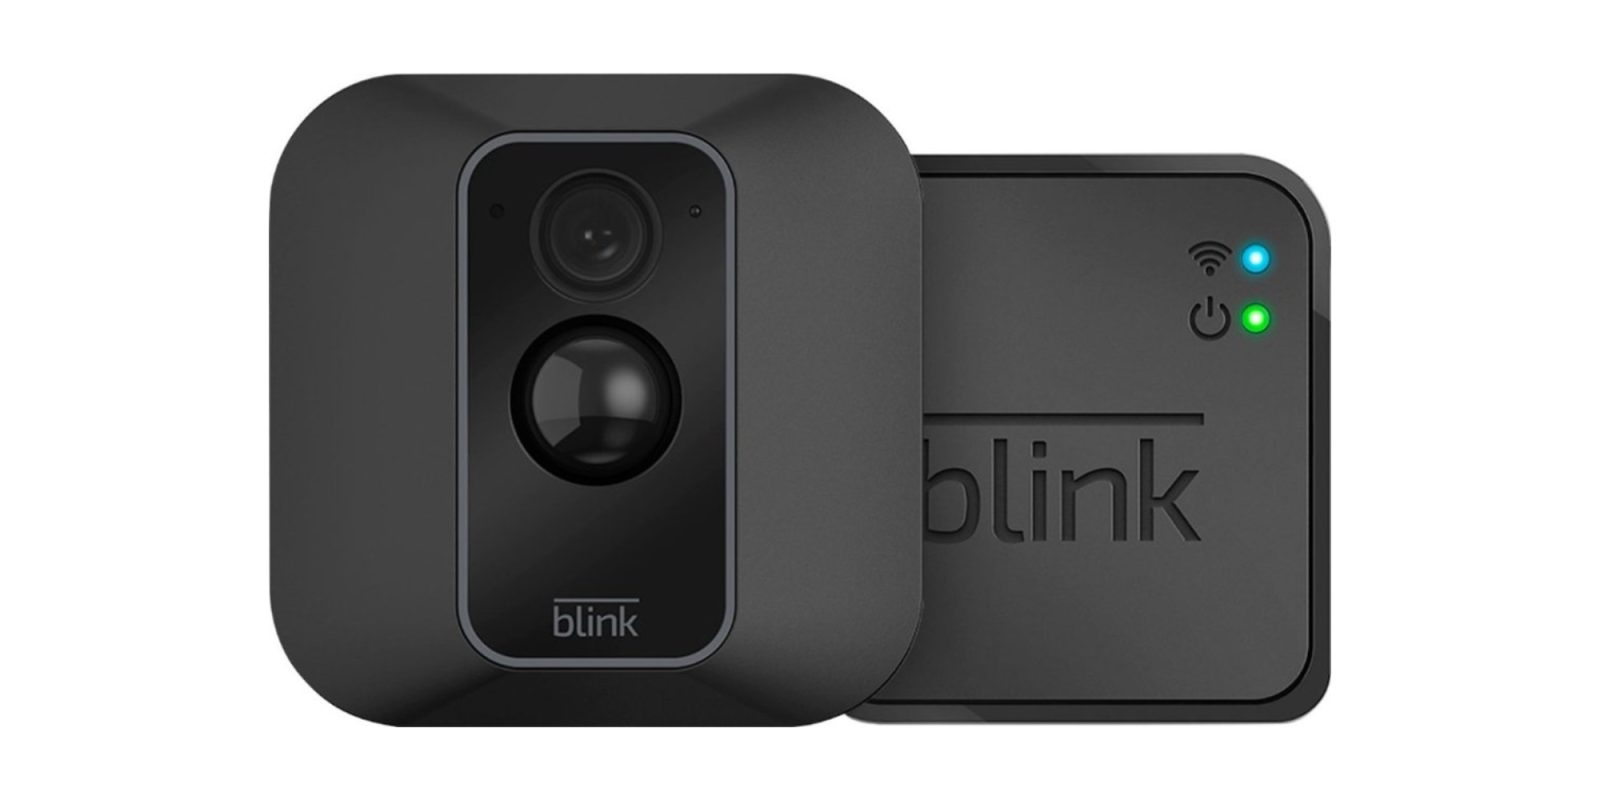 Save up 22% on Blink's new XT2 Home Security Camera Systems and more from $64